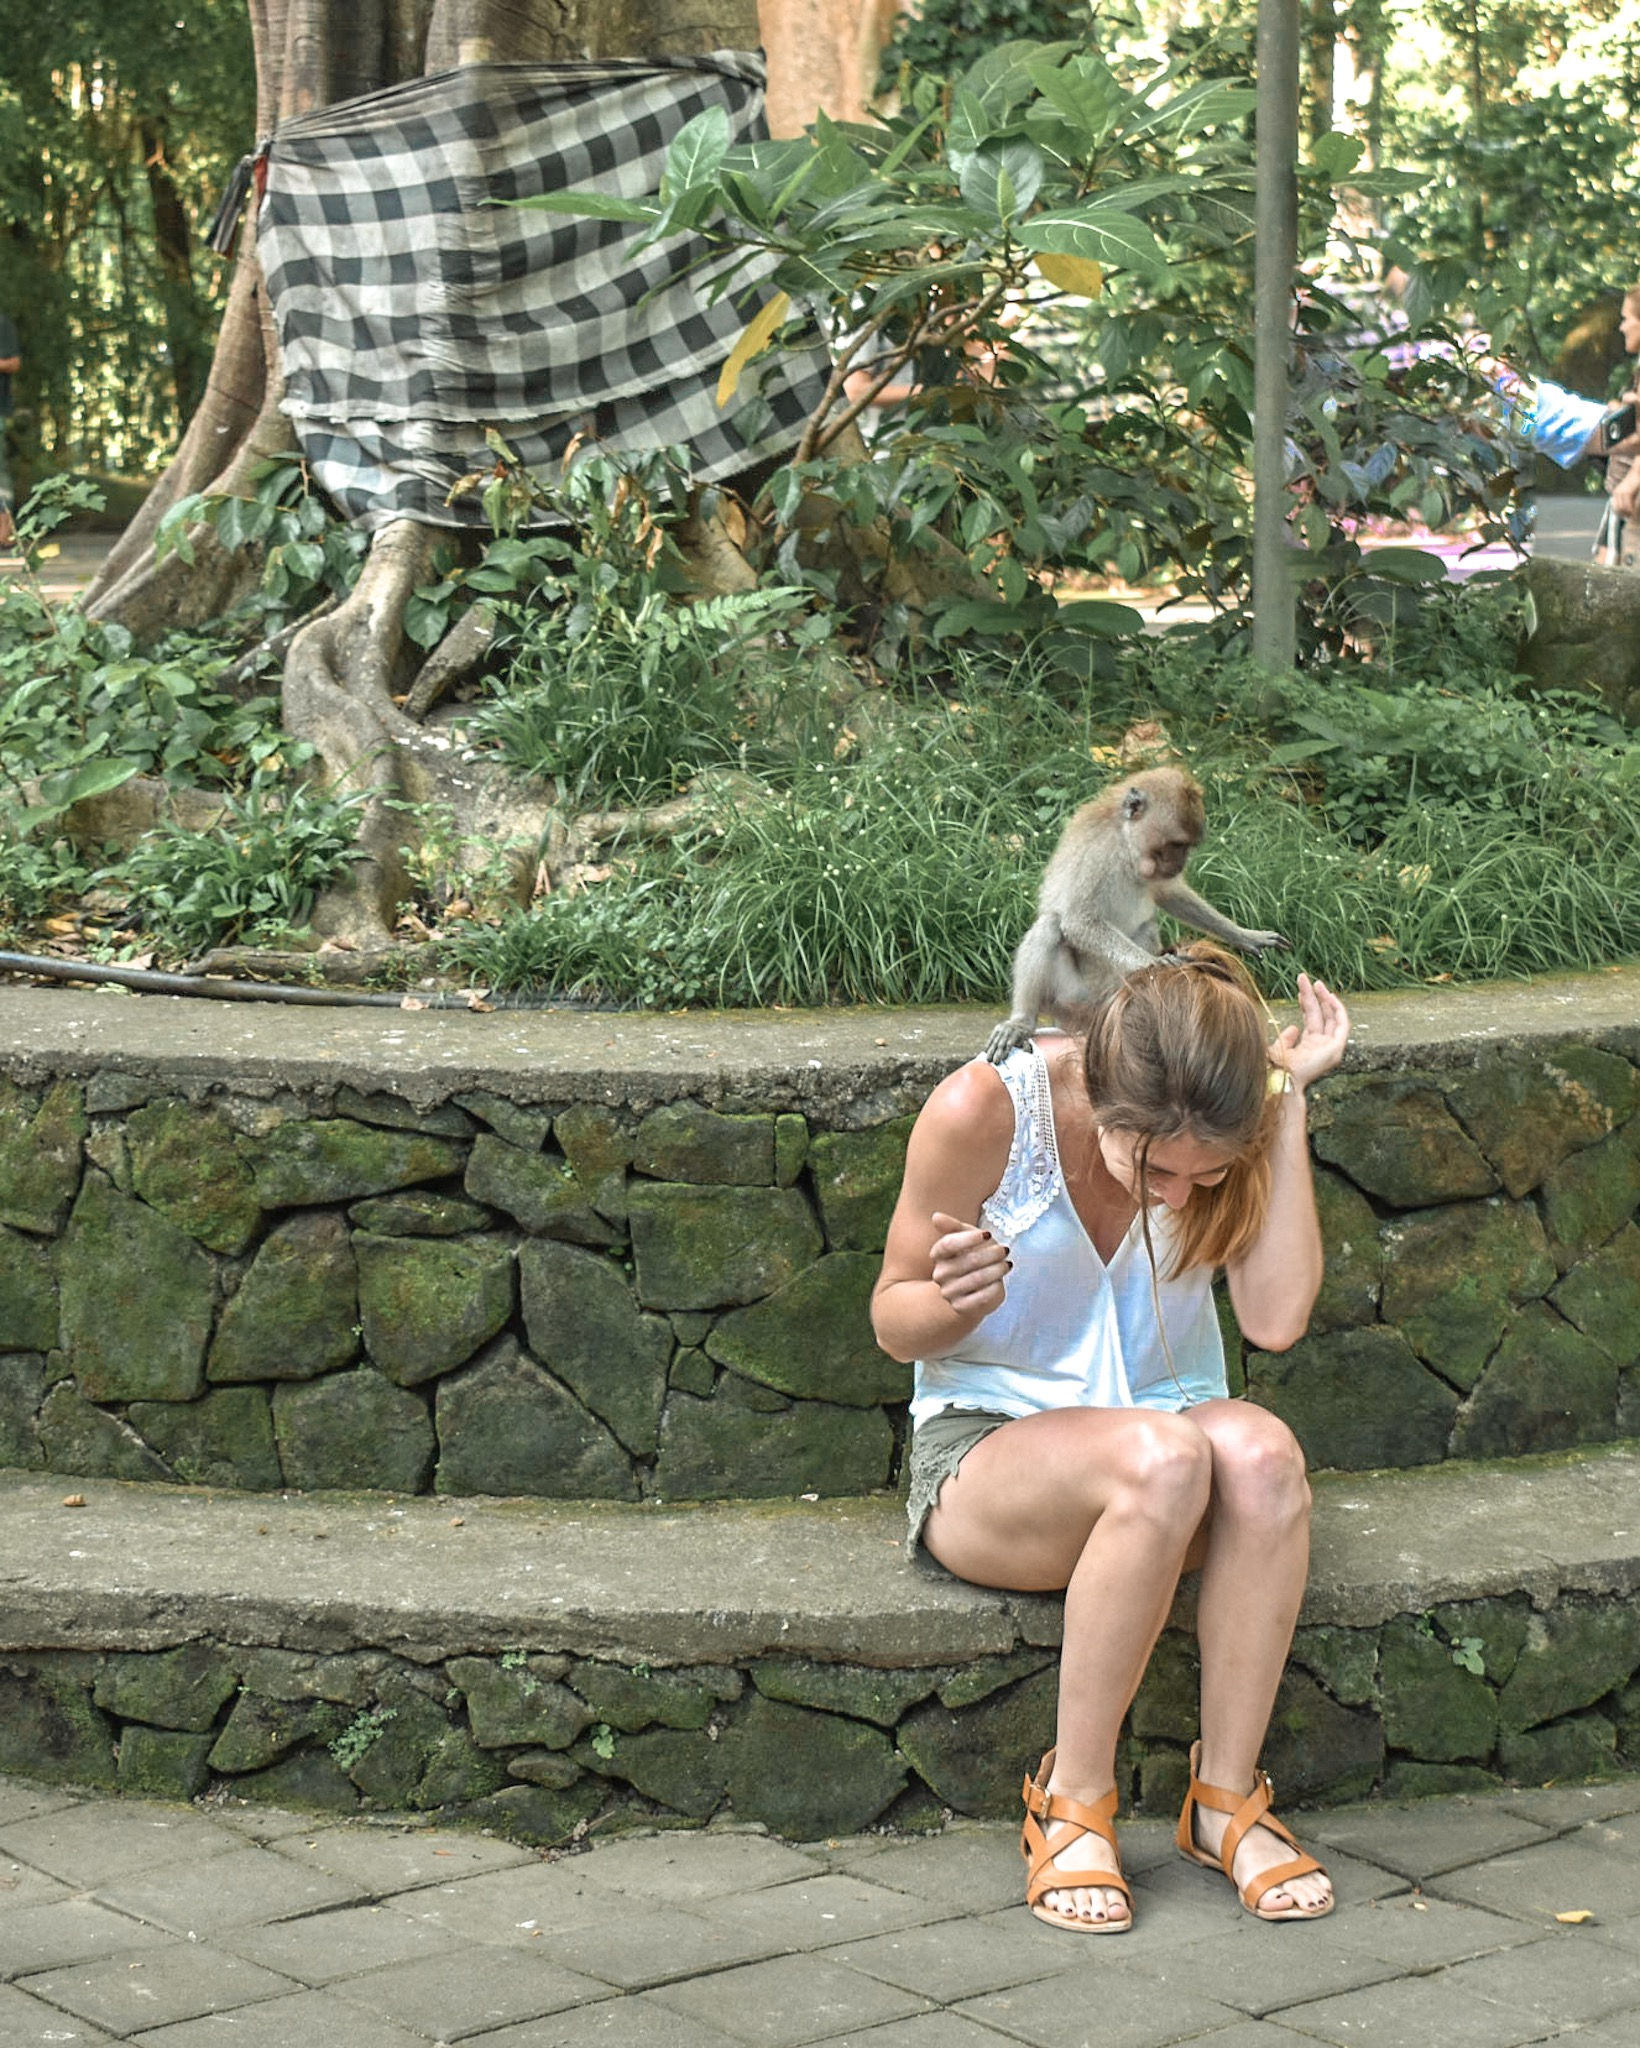 Woman at Monkey Forest in Bali, Indonesia